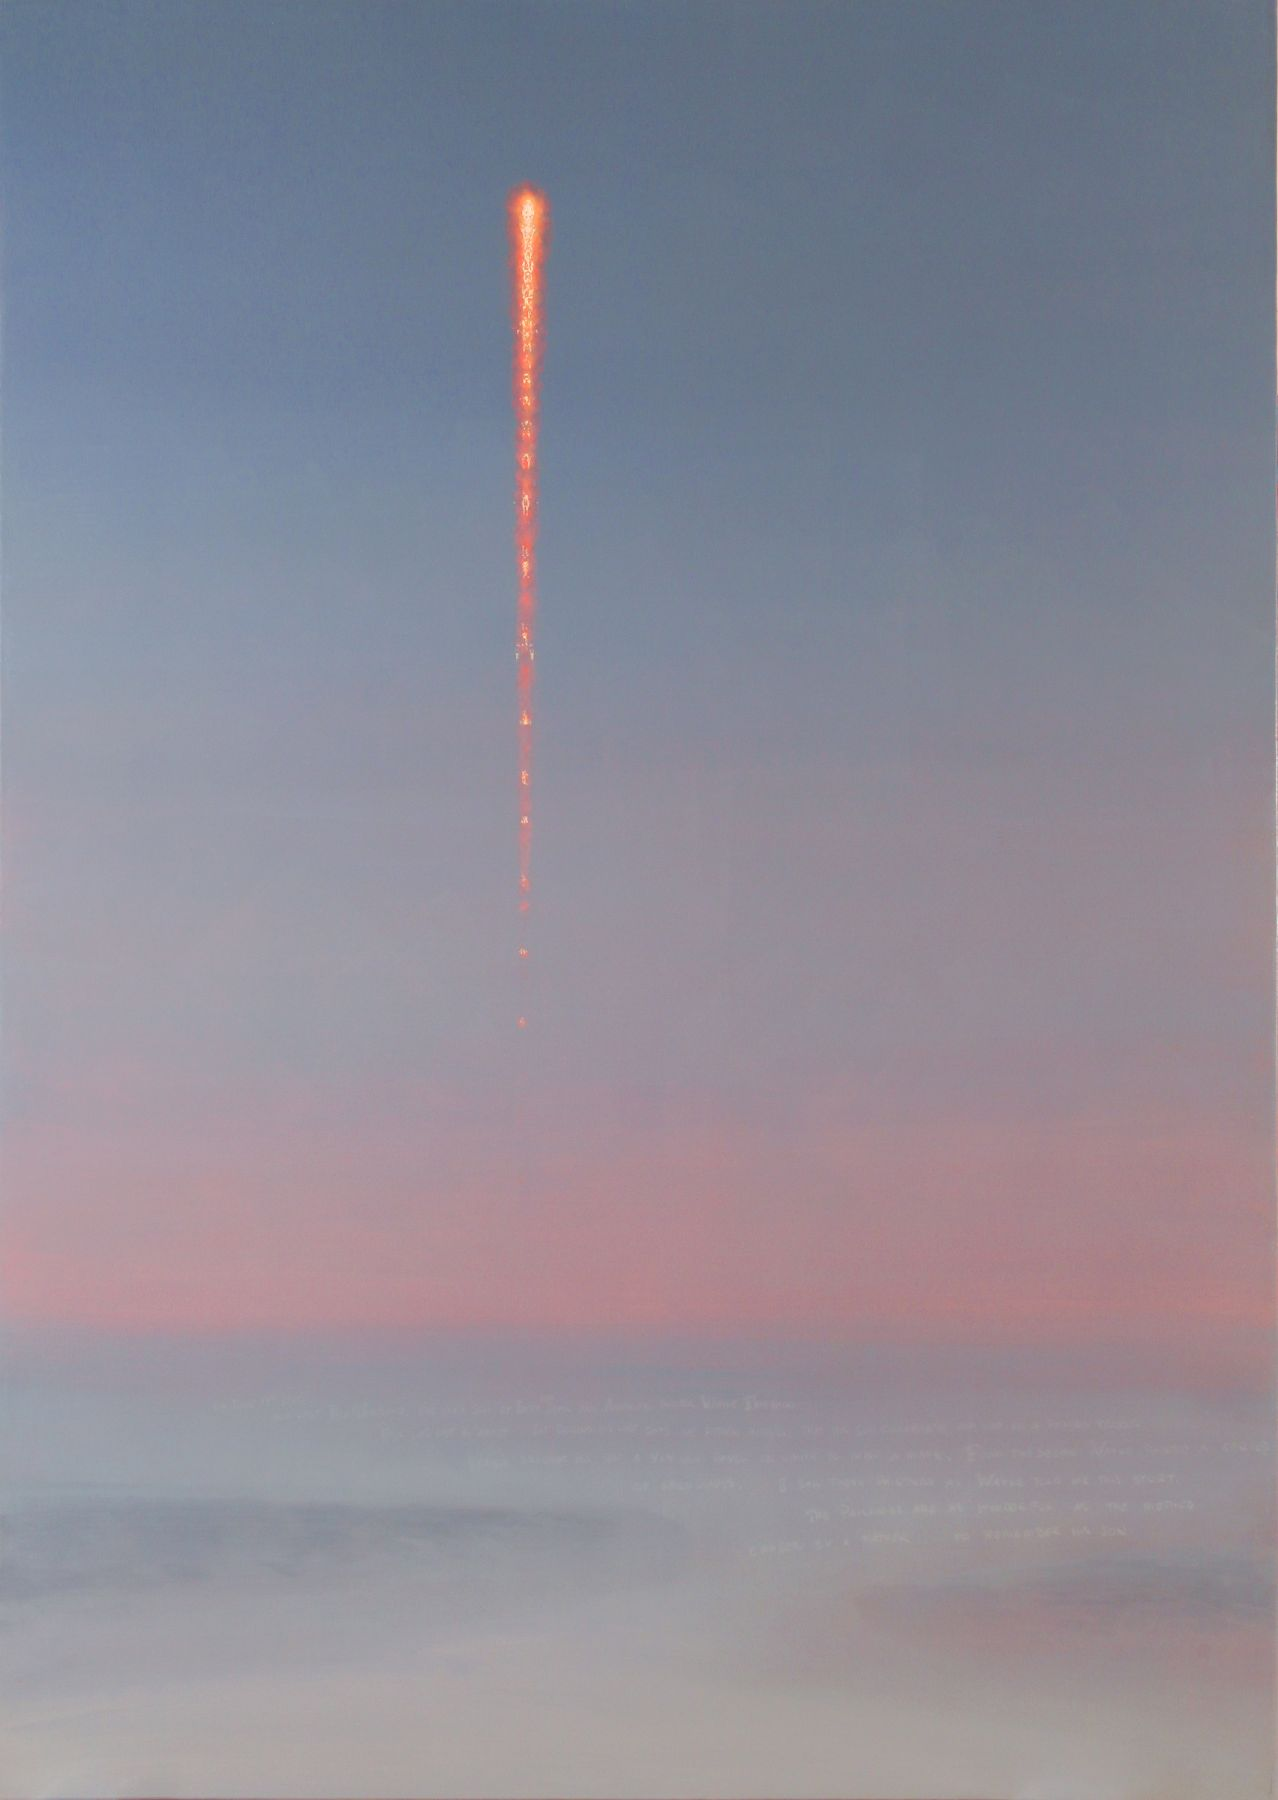 Stephen Hannock, Paul's Rocket at First Light (Mass MoCA #152), 2011